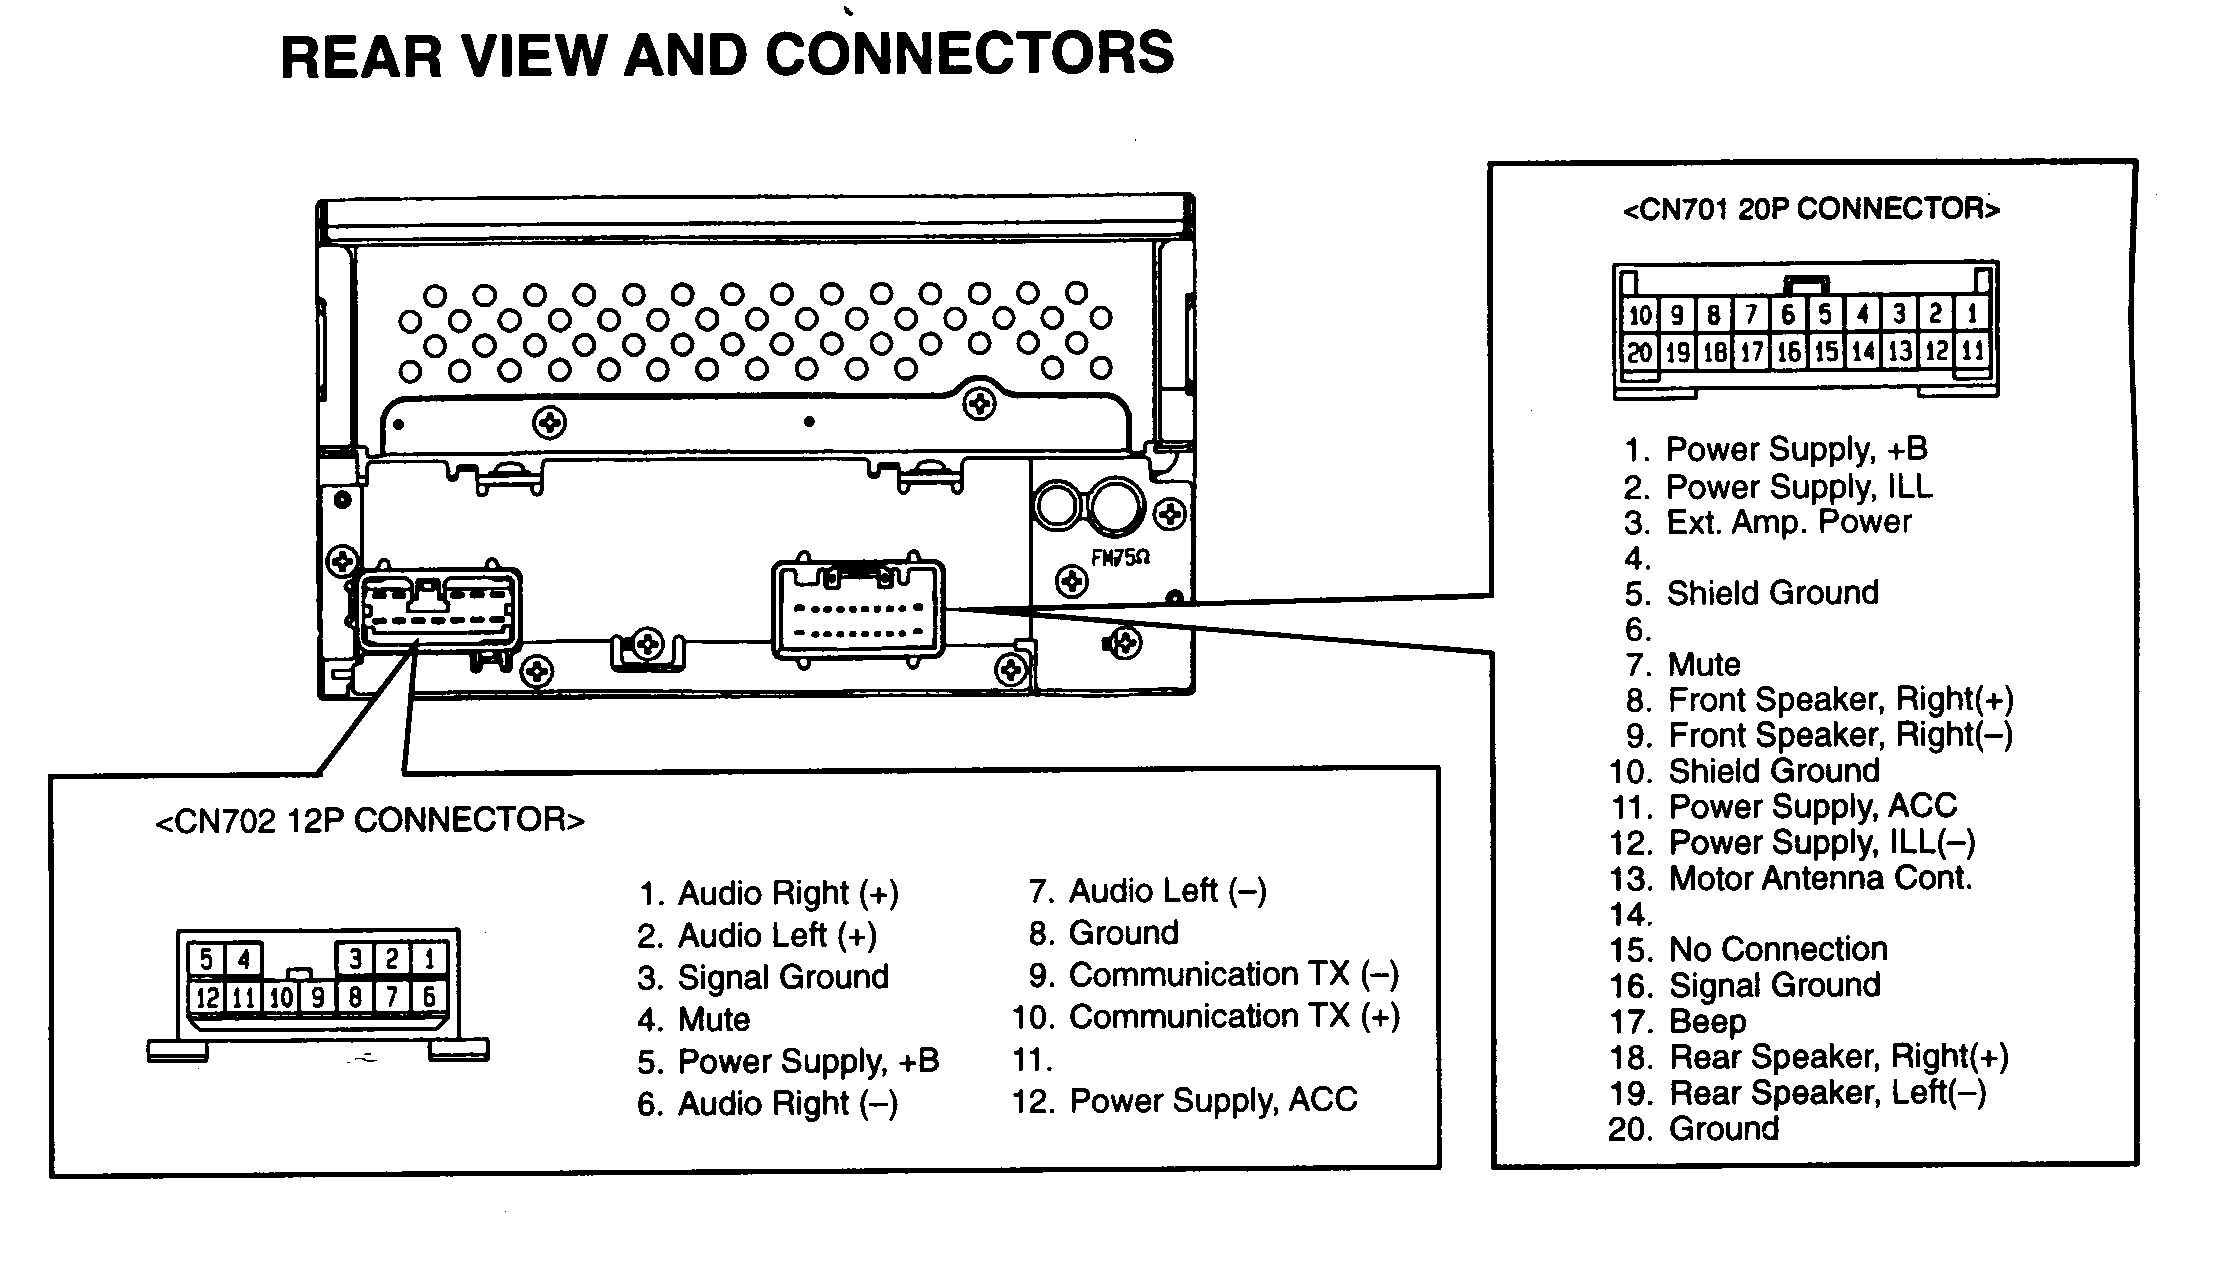 Factory Car Stereo Wiring Diagrams with Factory Car Stereo Wiring Diagrams Wiring Diagram Of Factory Car Stereo Wiring Diagrams